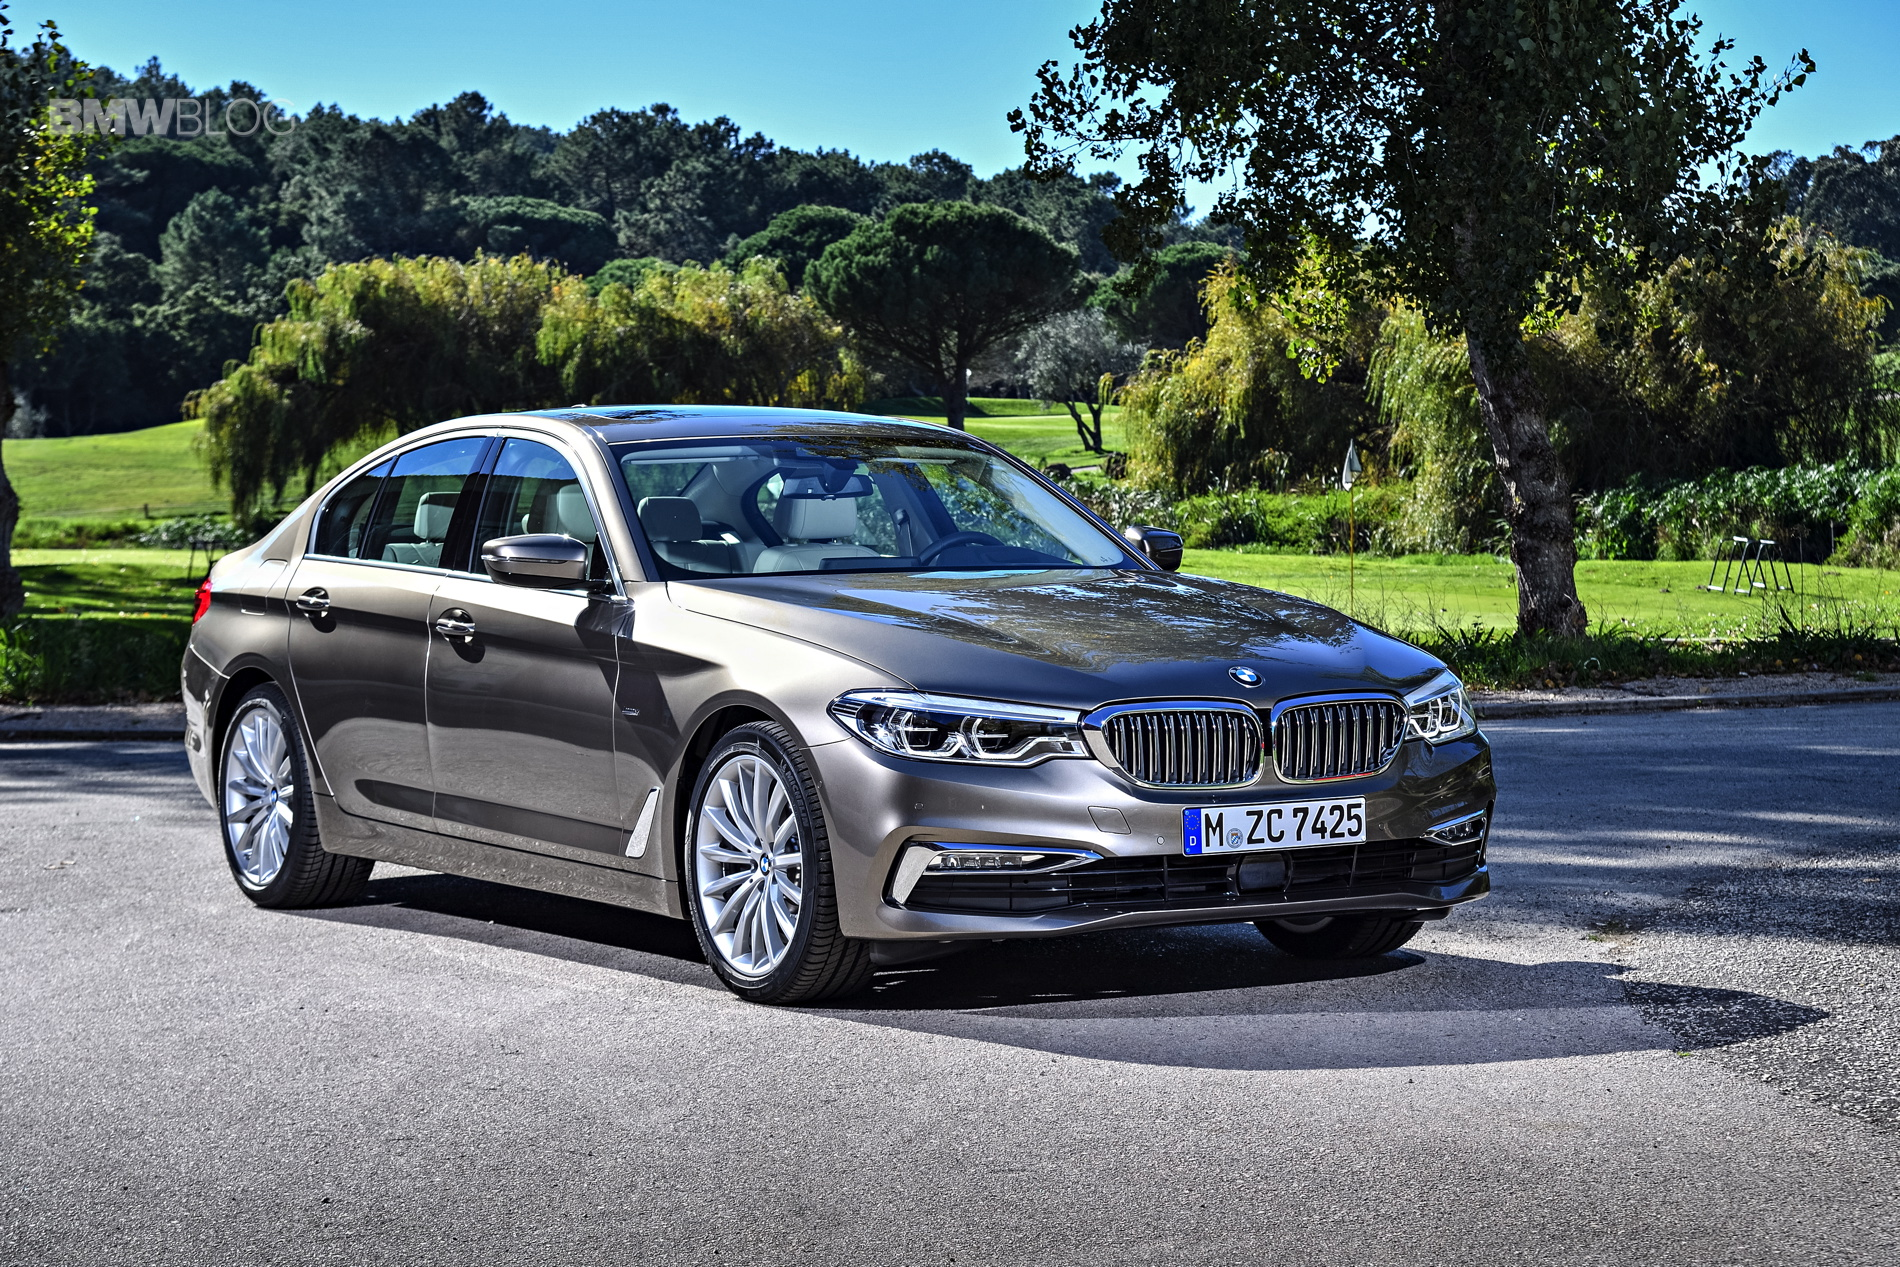 The New 520d Will Likely Be The 5 Series Most Popular Model